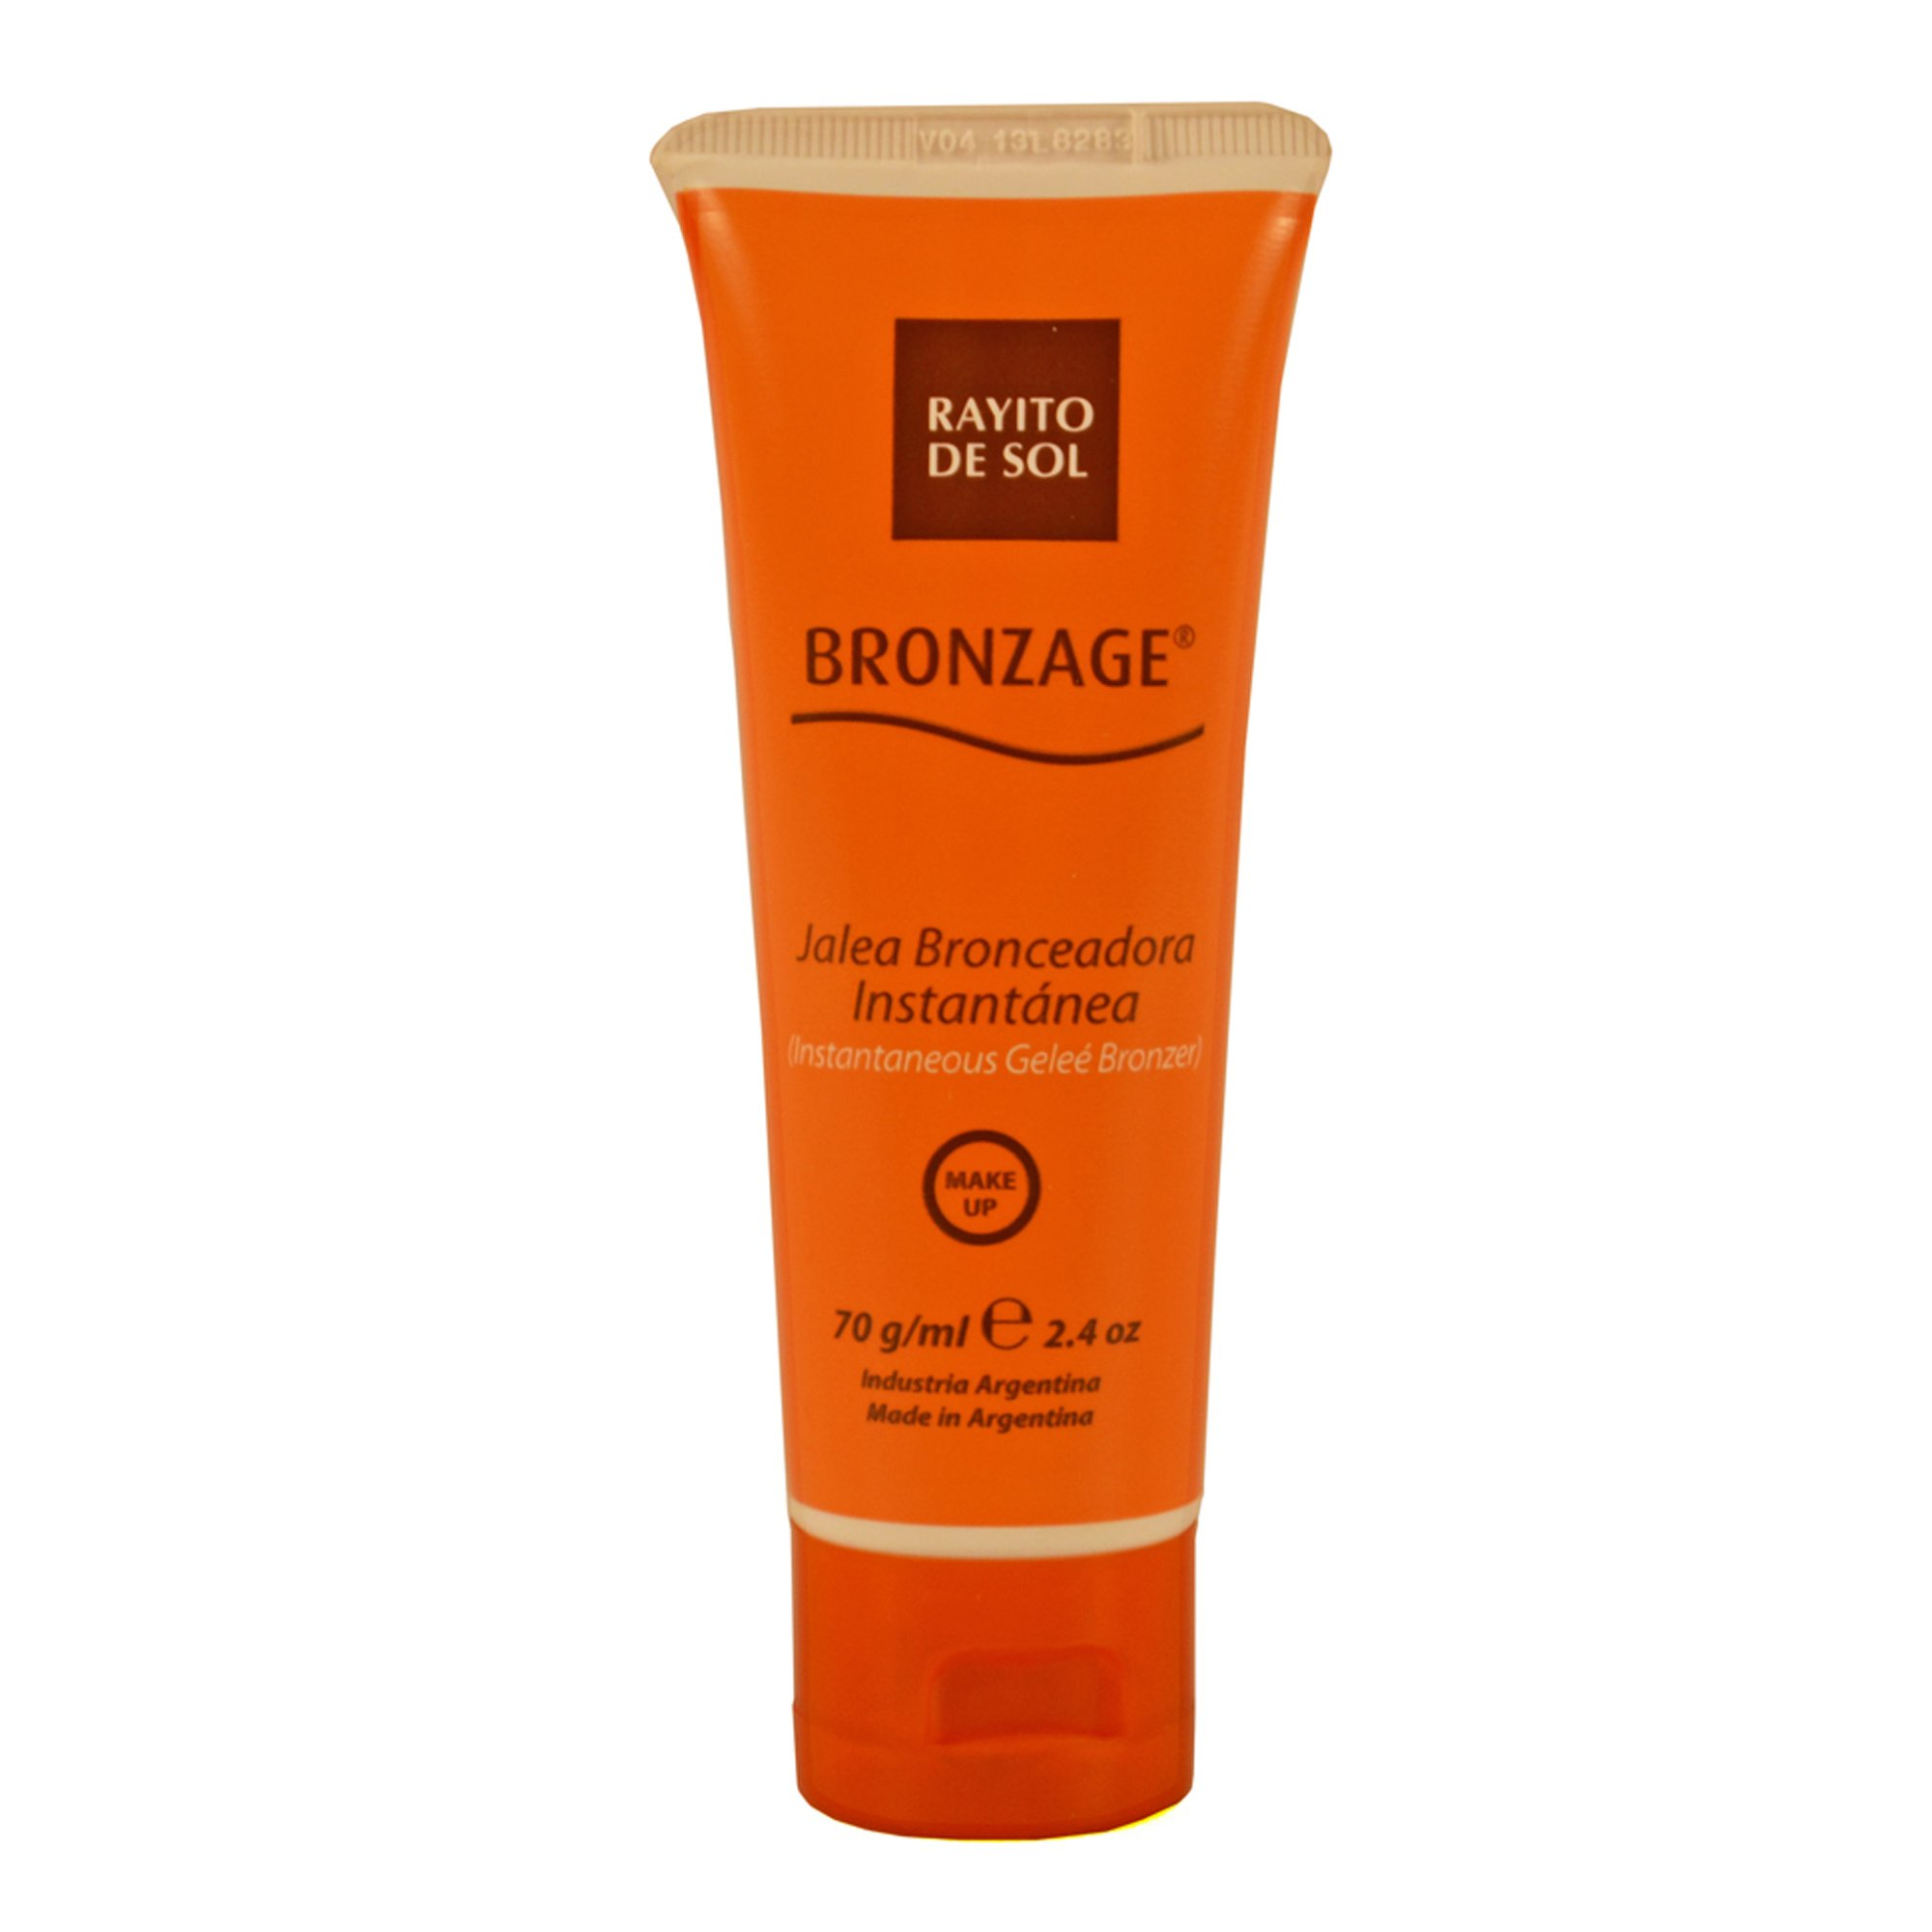 Rayito De Sol Instant Bronzing Gel, 2.4 Ounce by Rayito De Sol (Image #1)